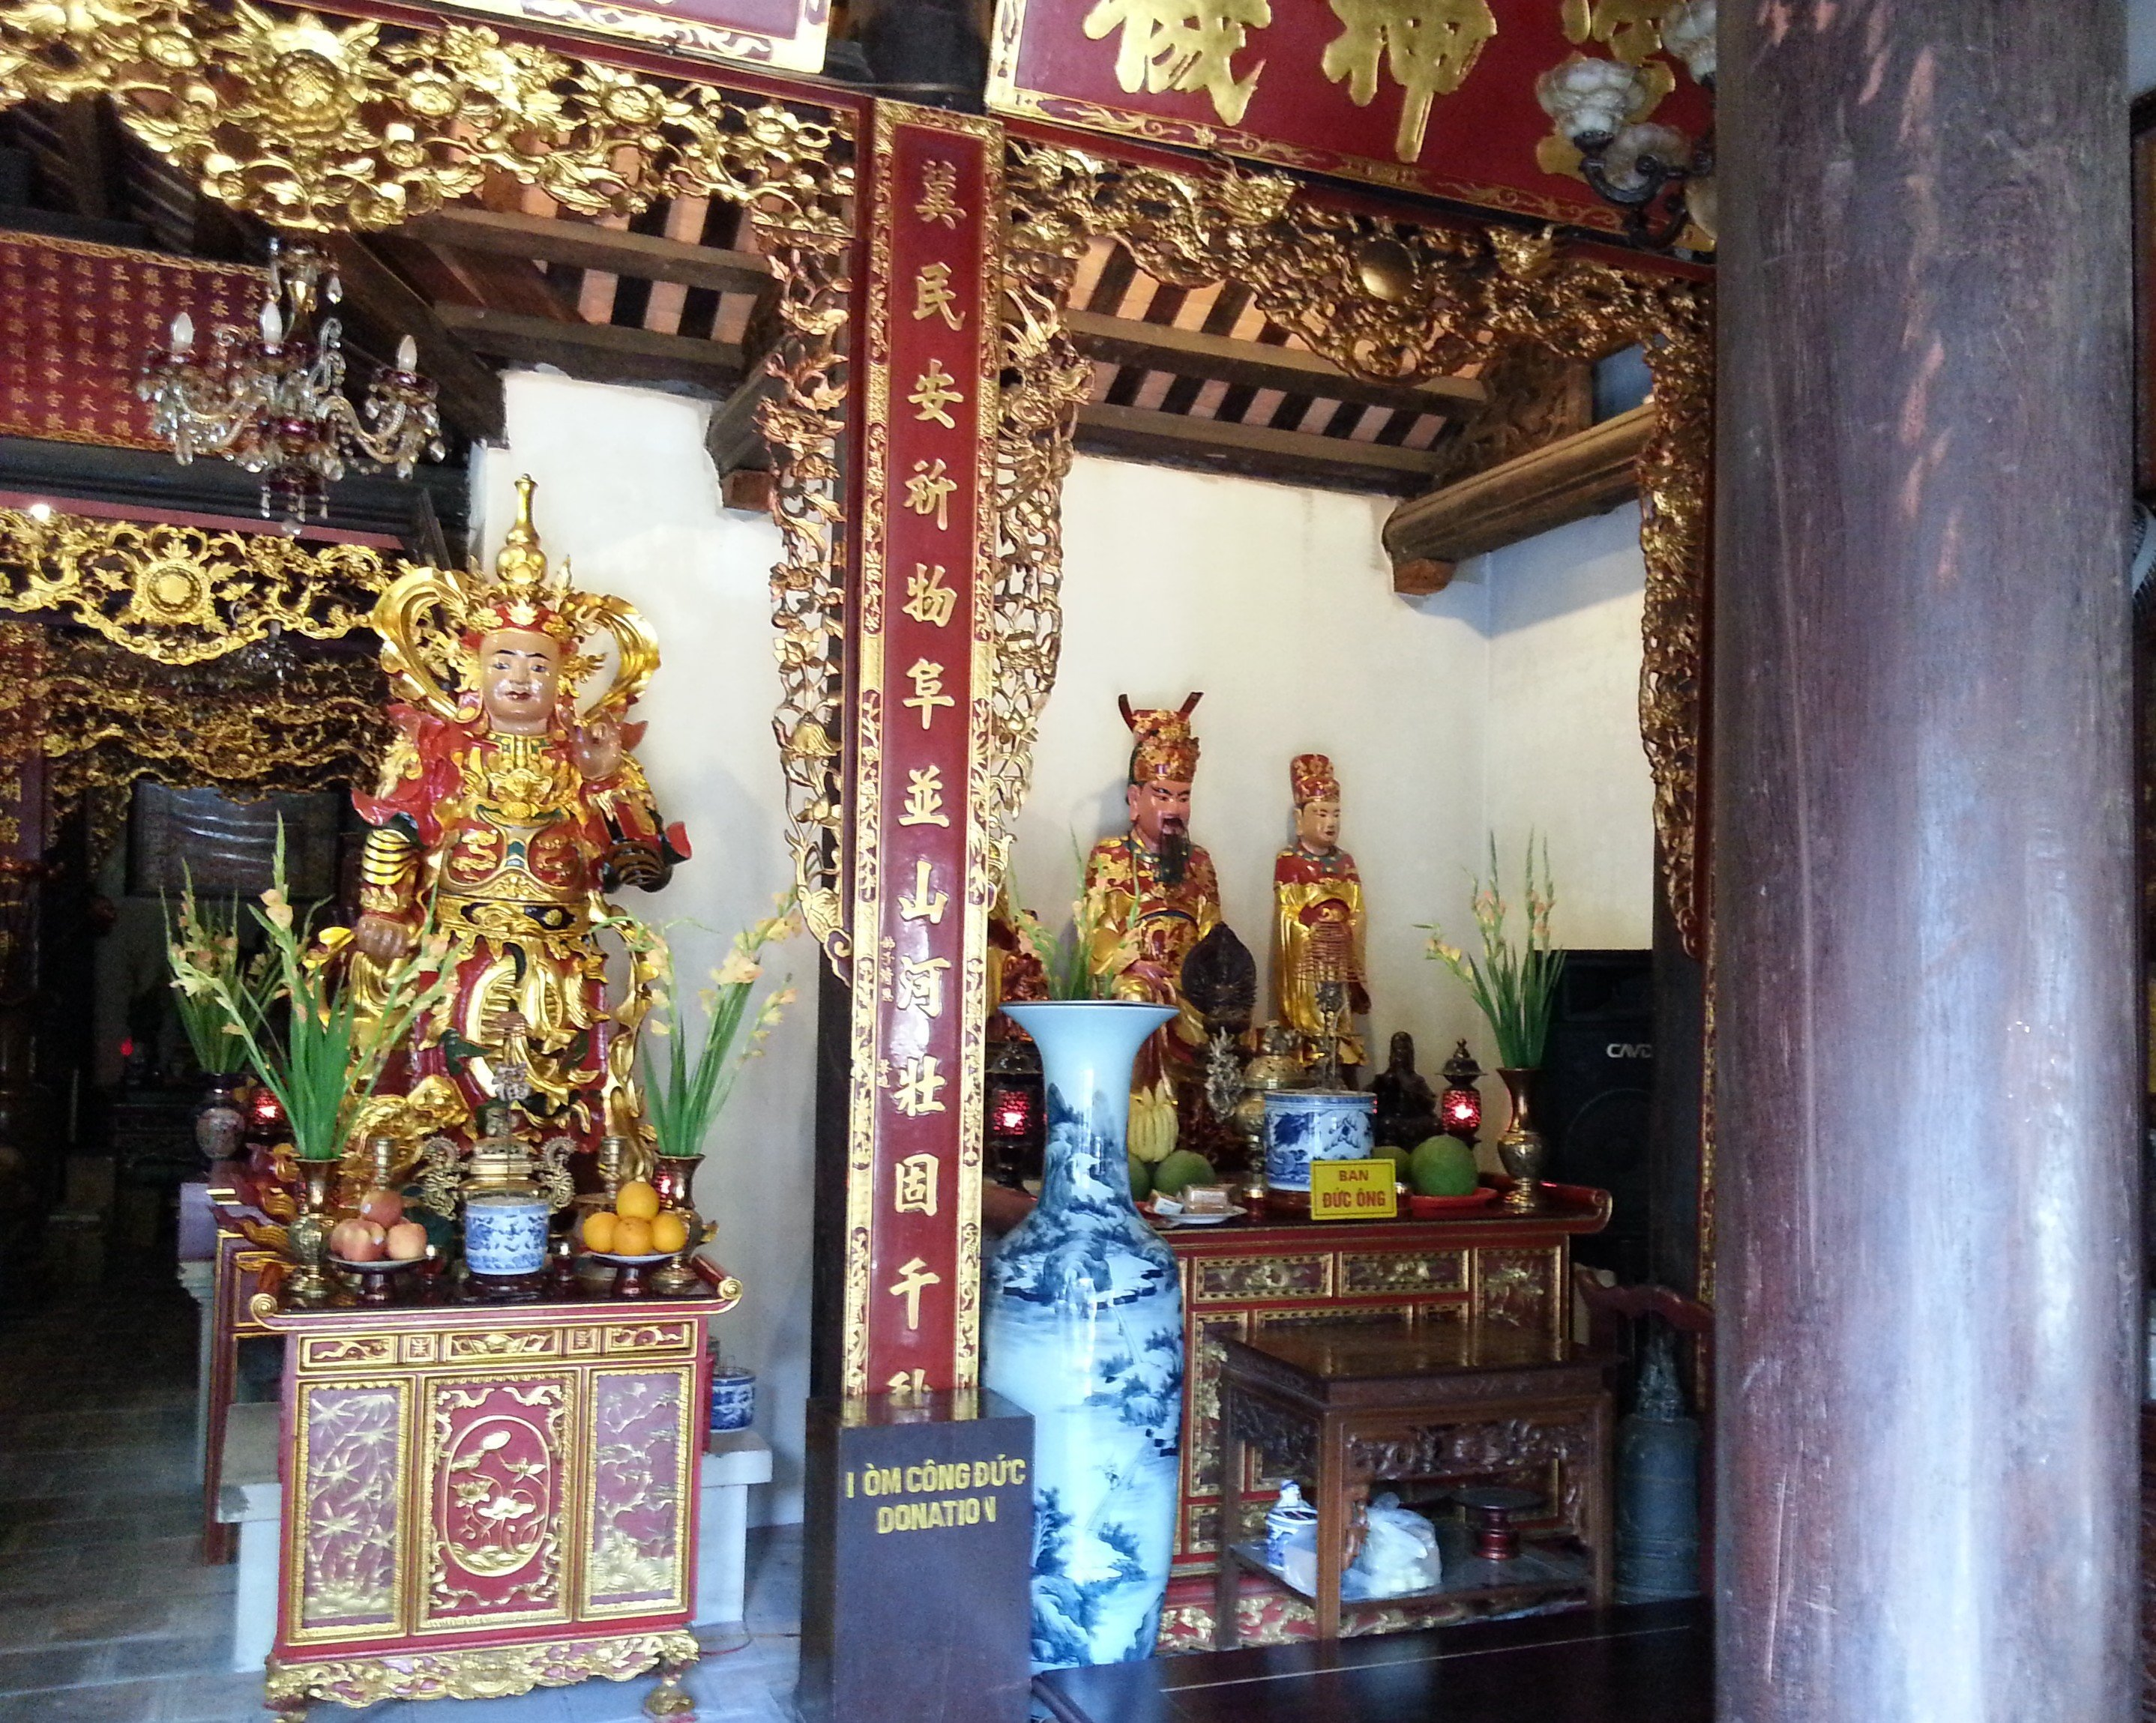 Guan Yu and Confucius shrines at Chua Dien Huu Pagoda